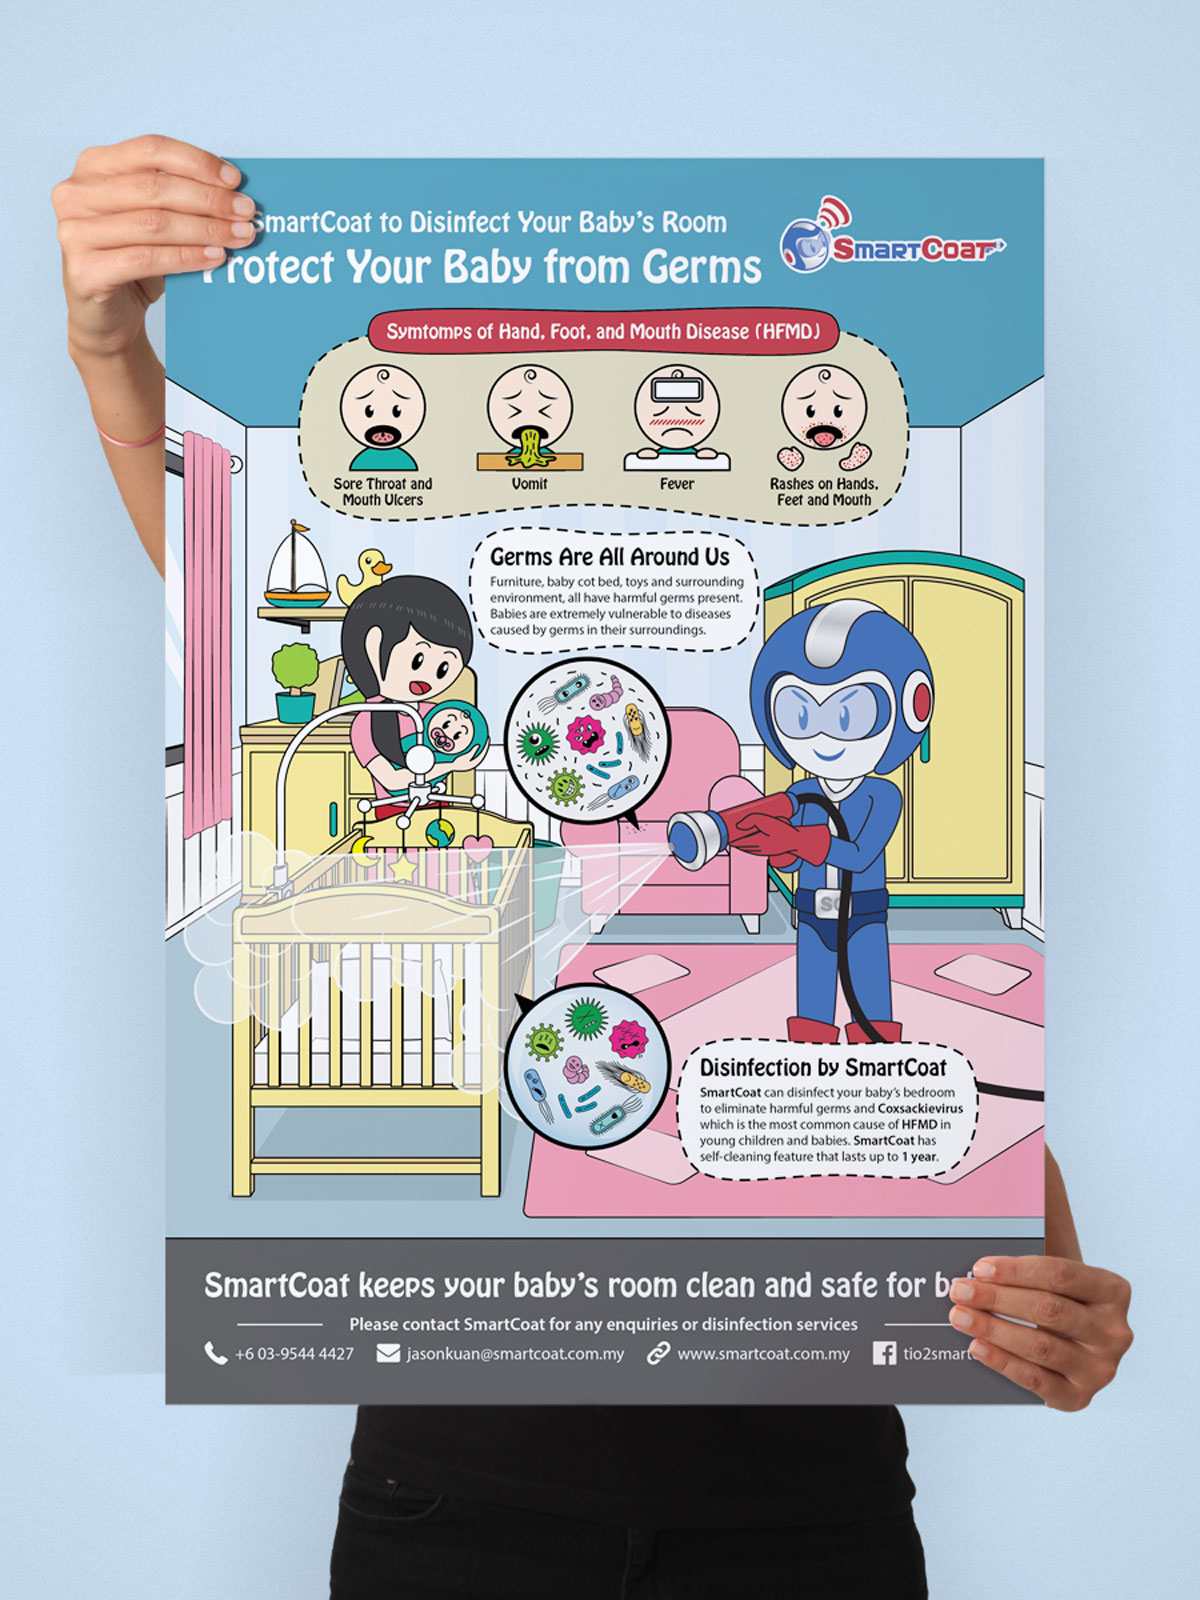 SmartCoat Protects Your Baby From Germs Poster Design 05